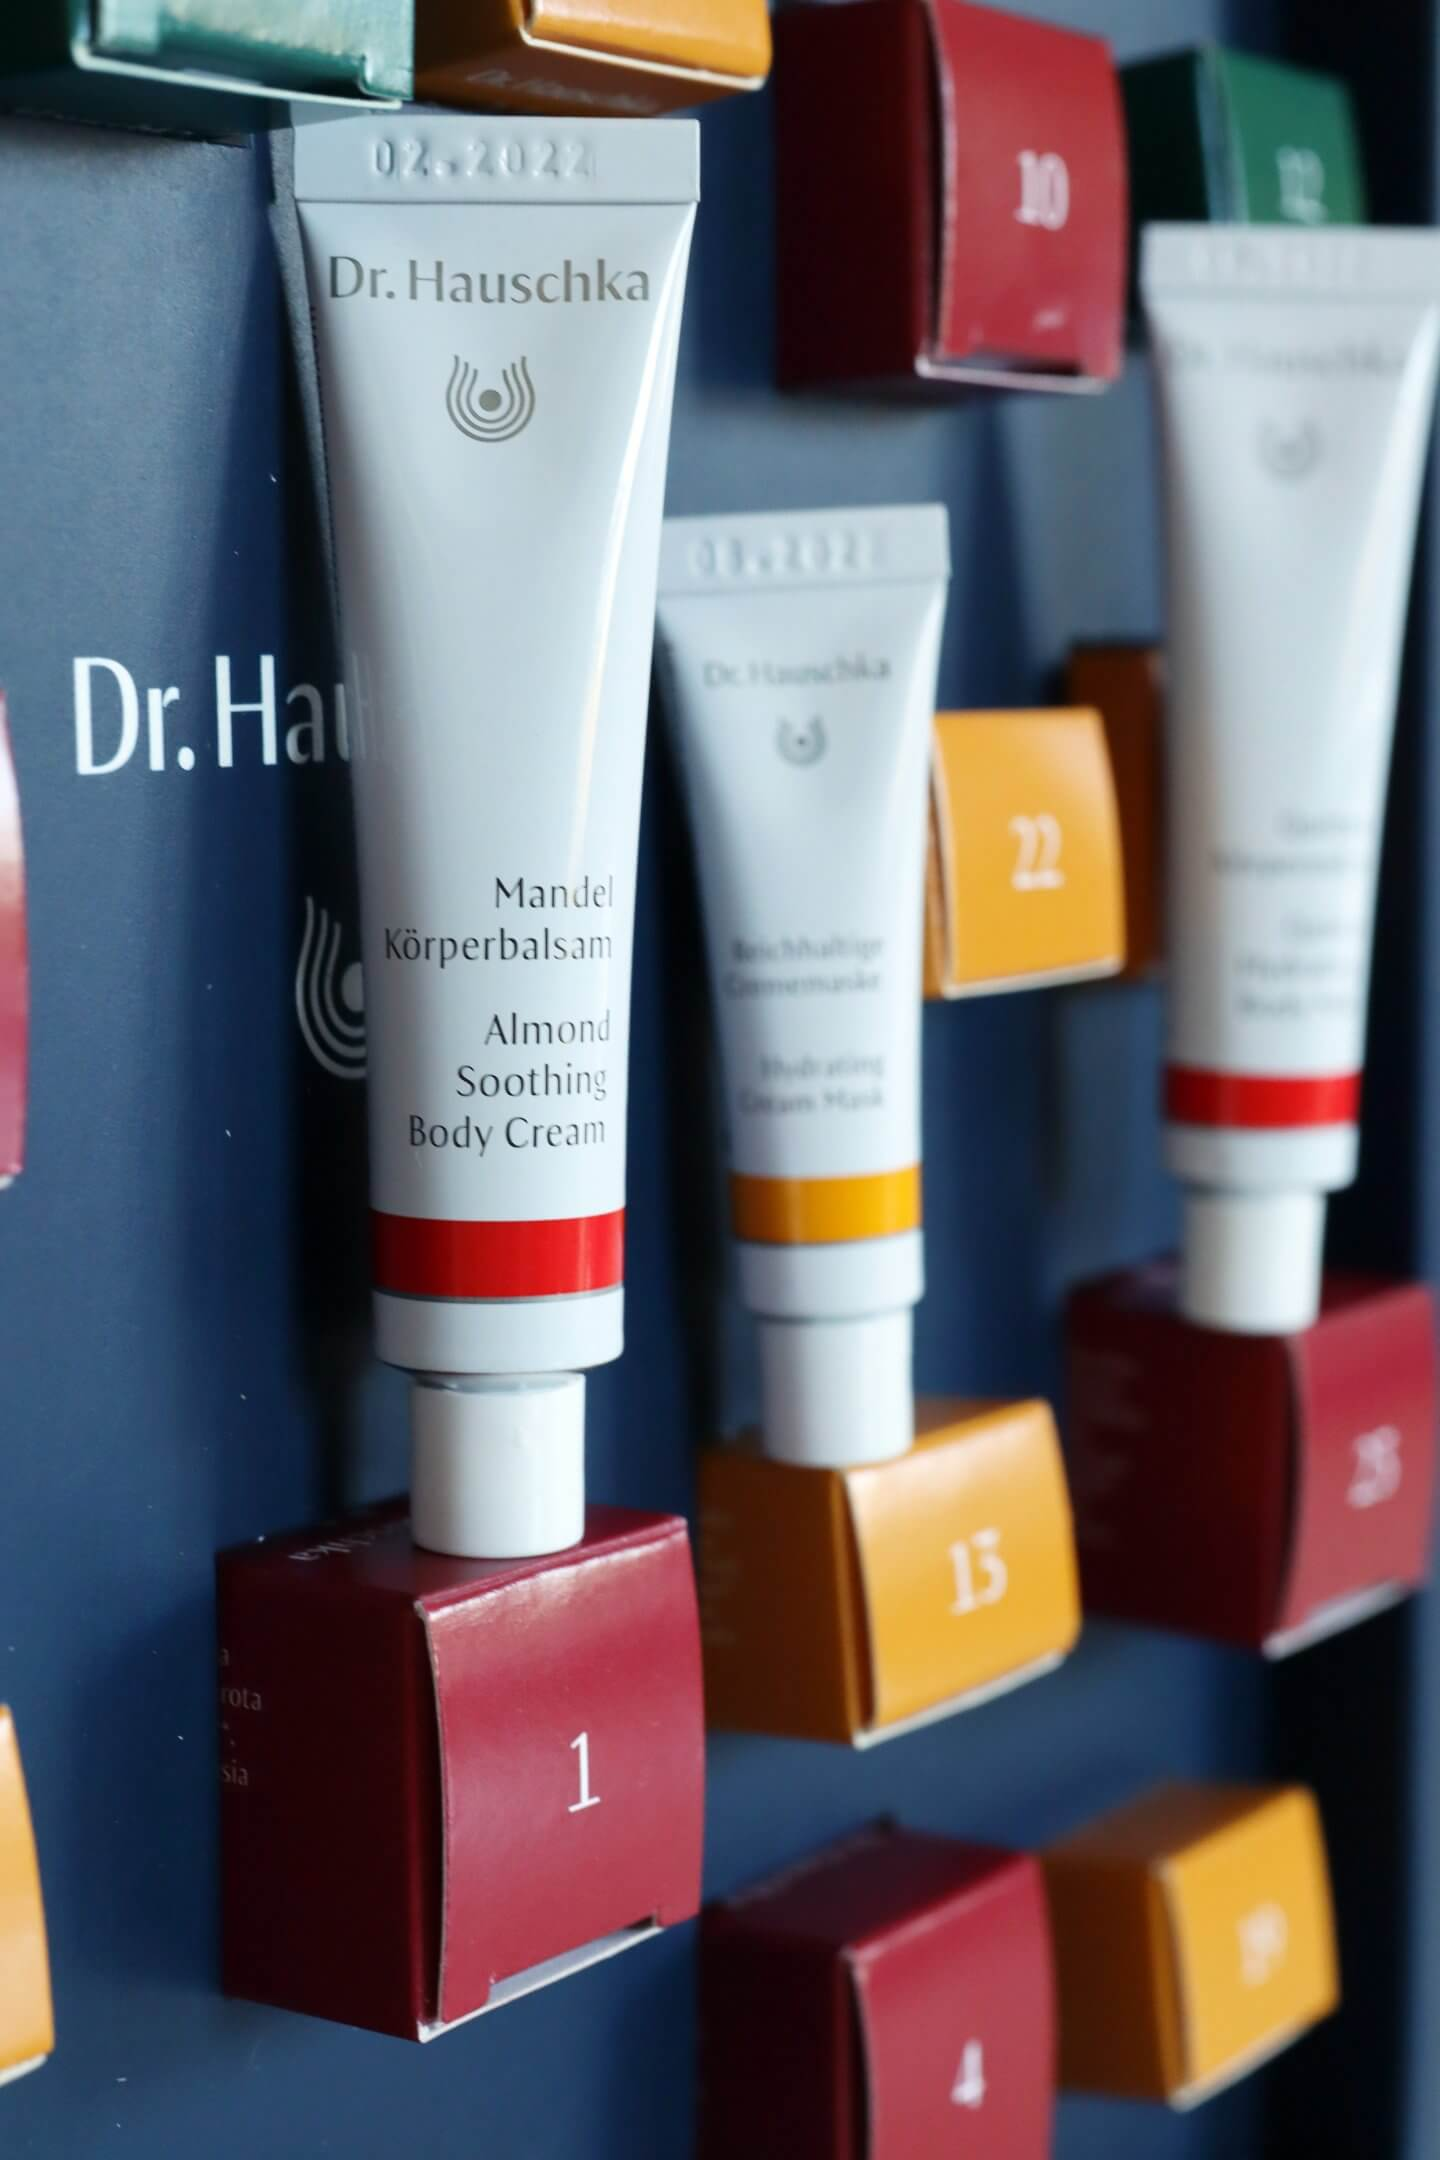 dr hauschka products - Actually Anna